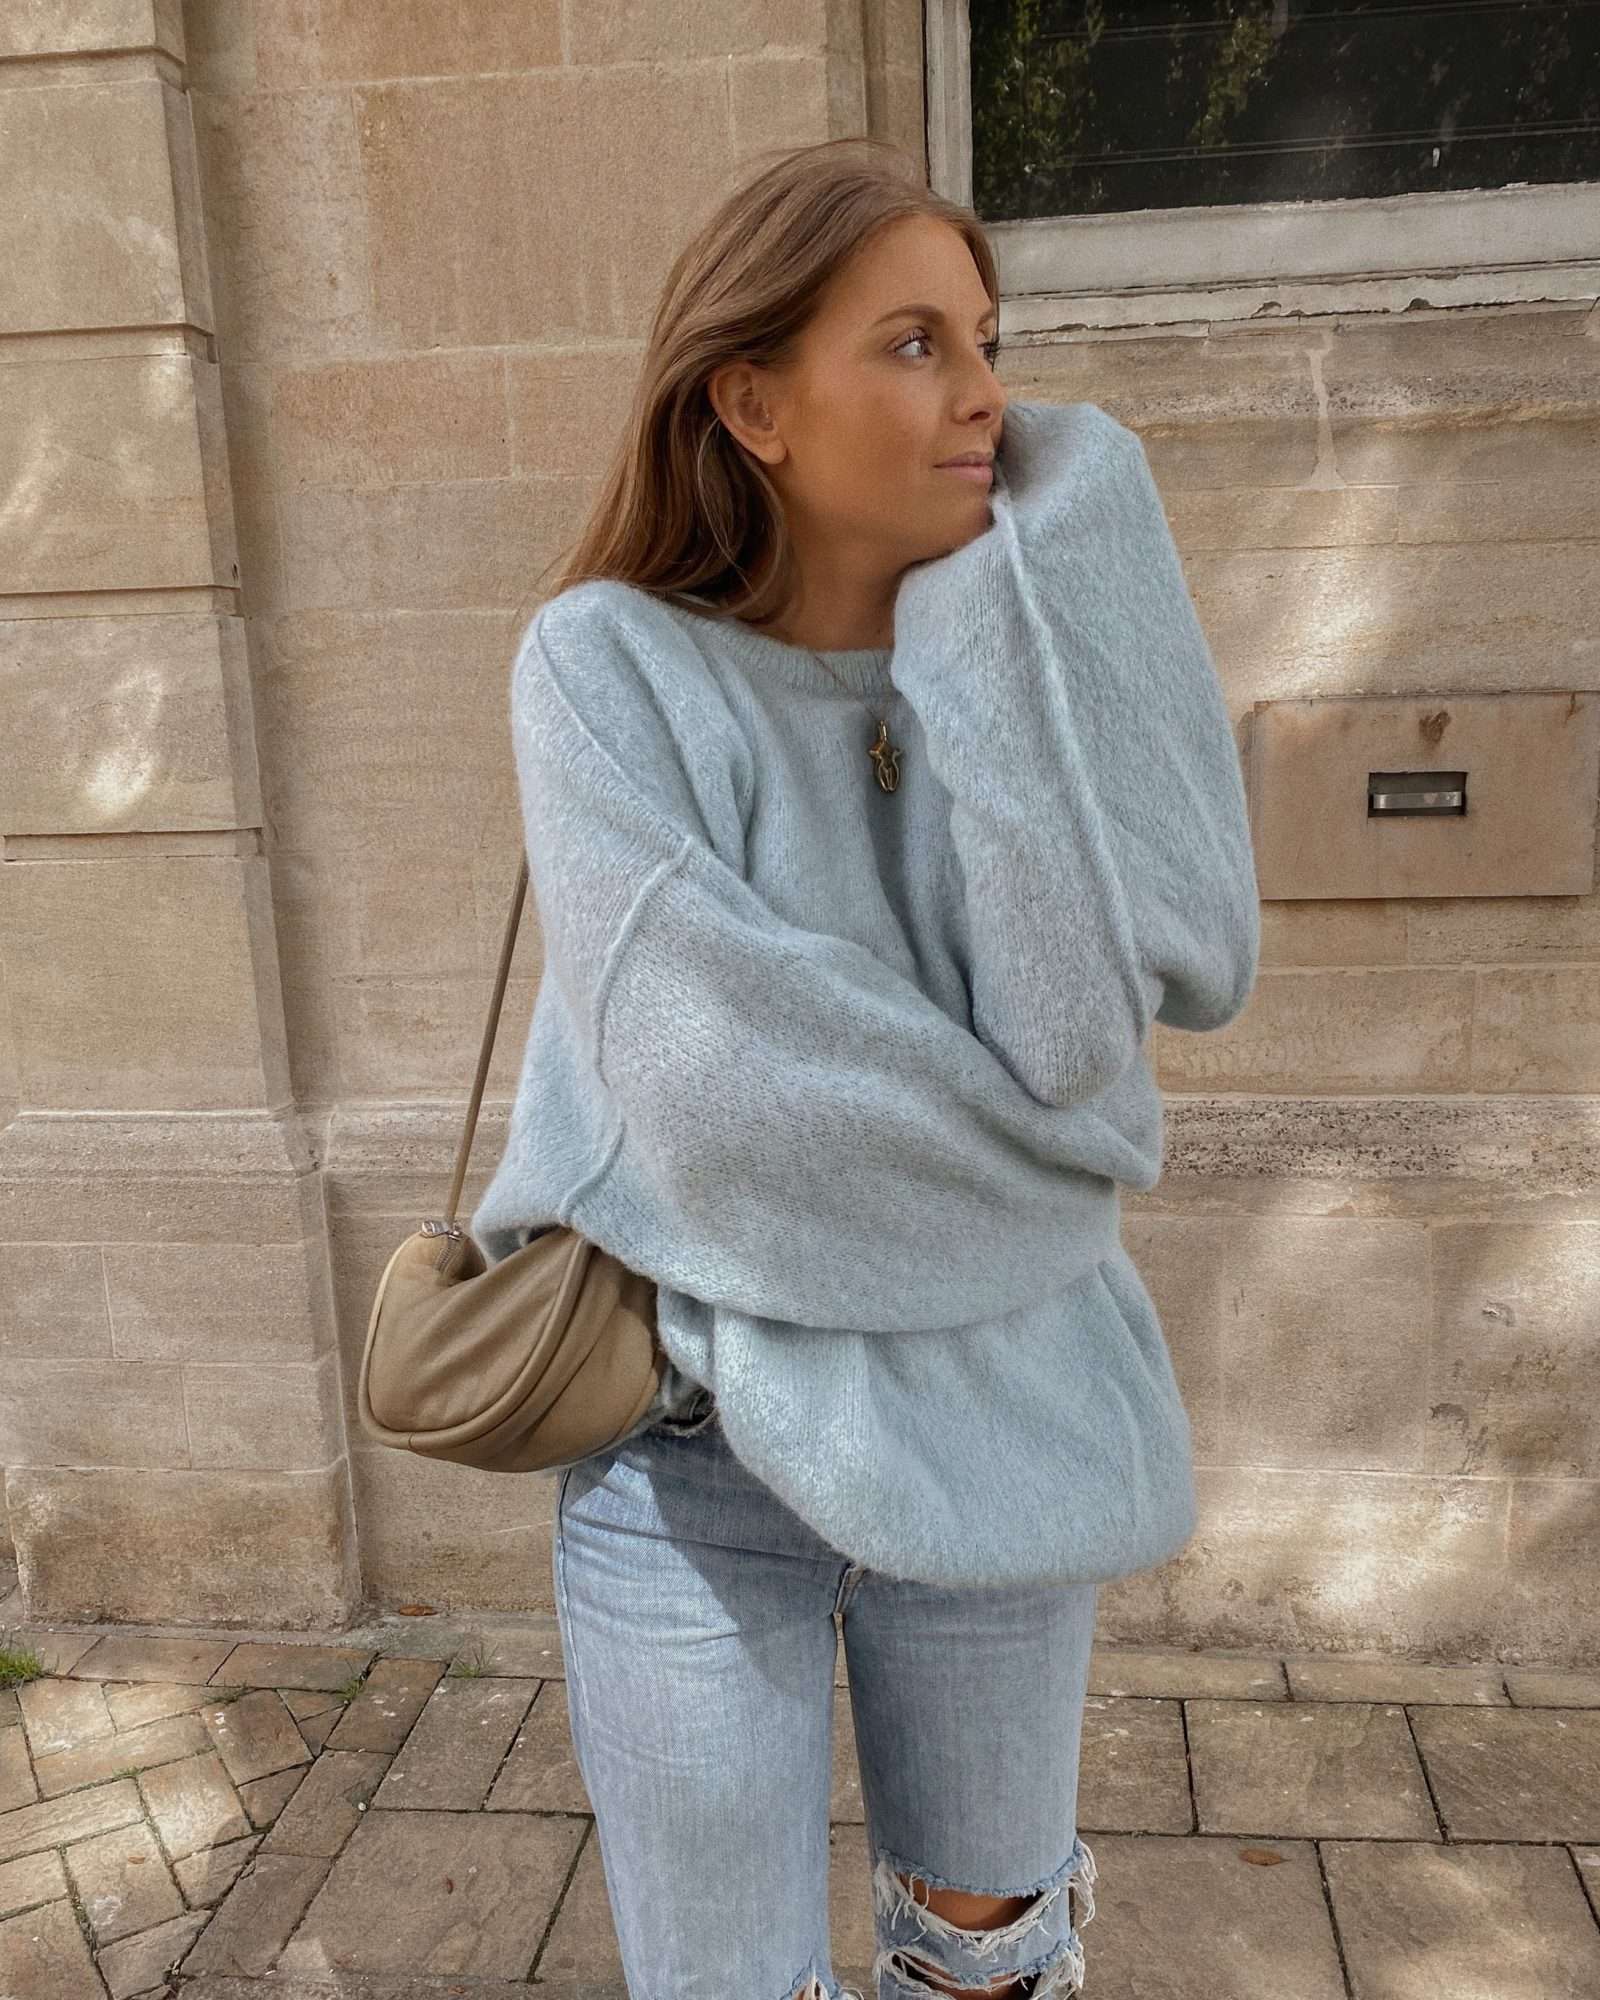 Autumn Outifts - Cozy Outfit